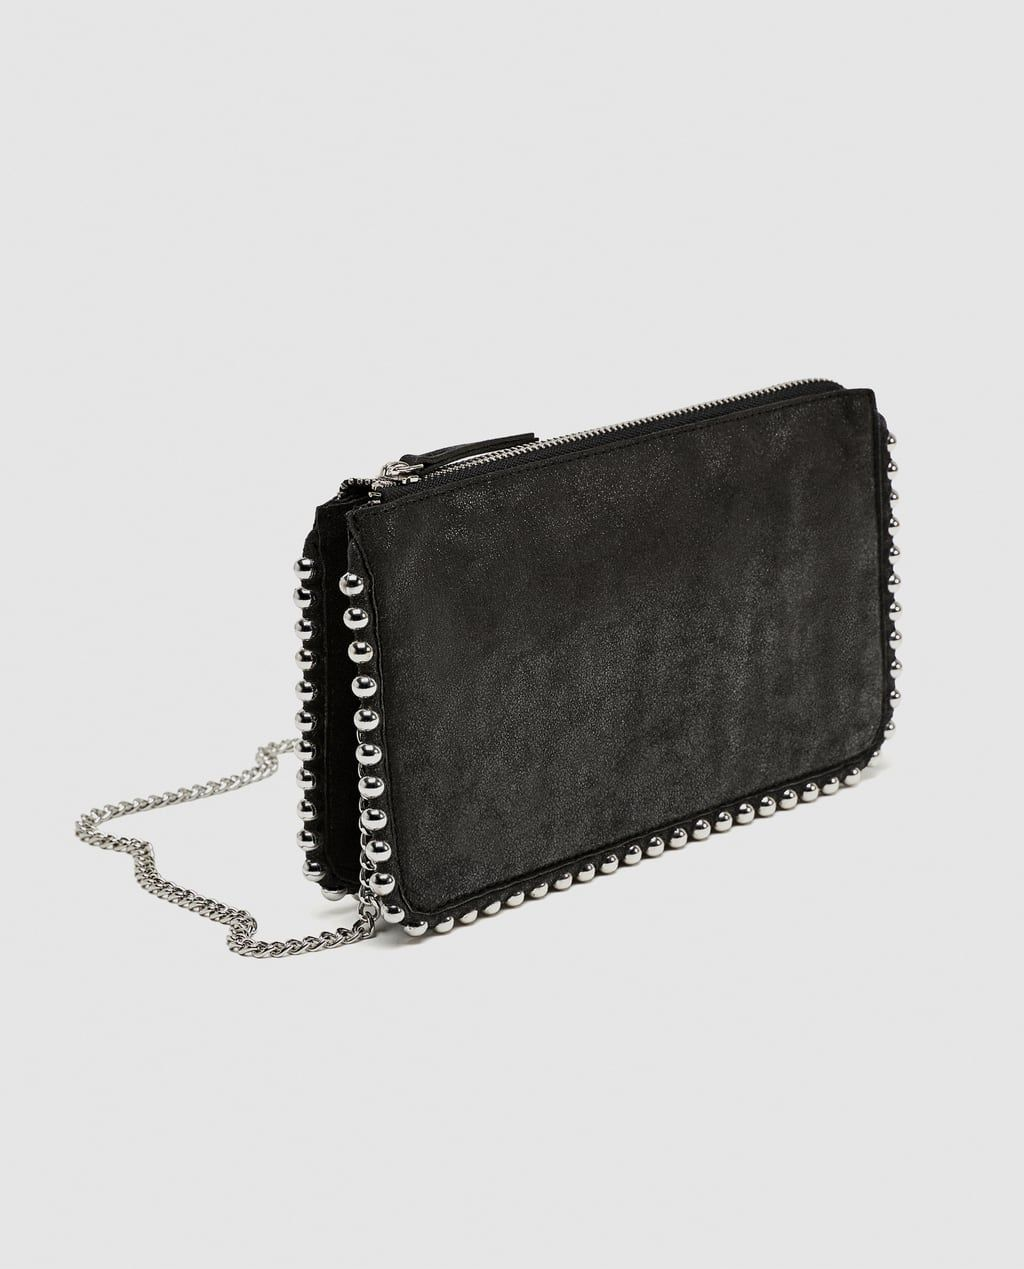 b6d4f6ed4a Studded black crossbody bag | bags | Black cross body bag, Black ...